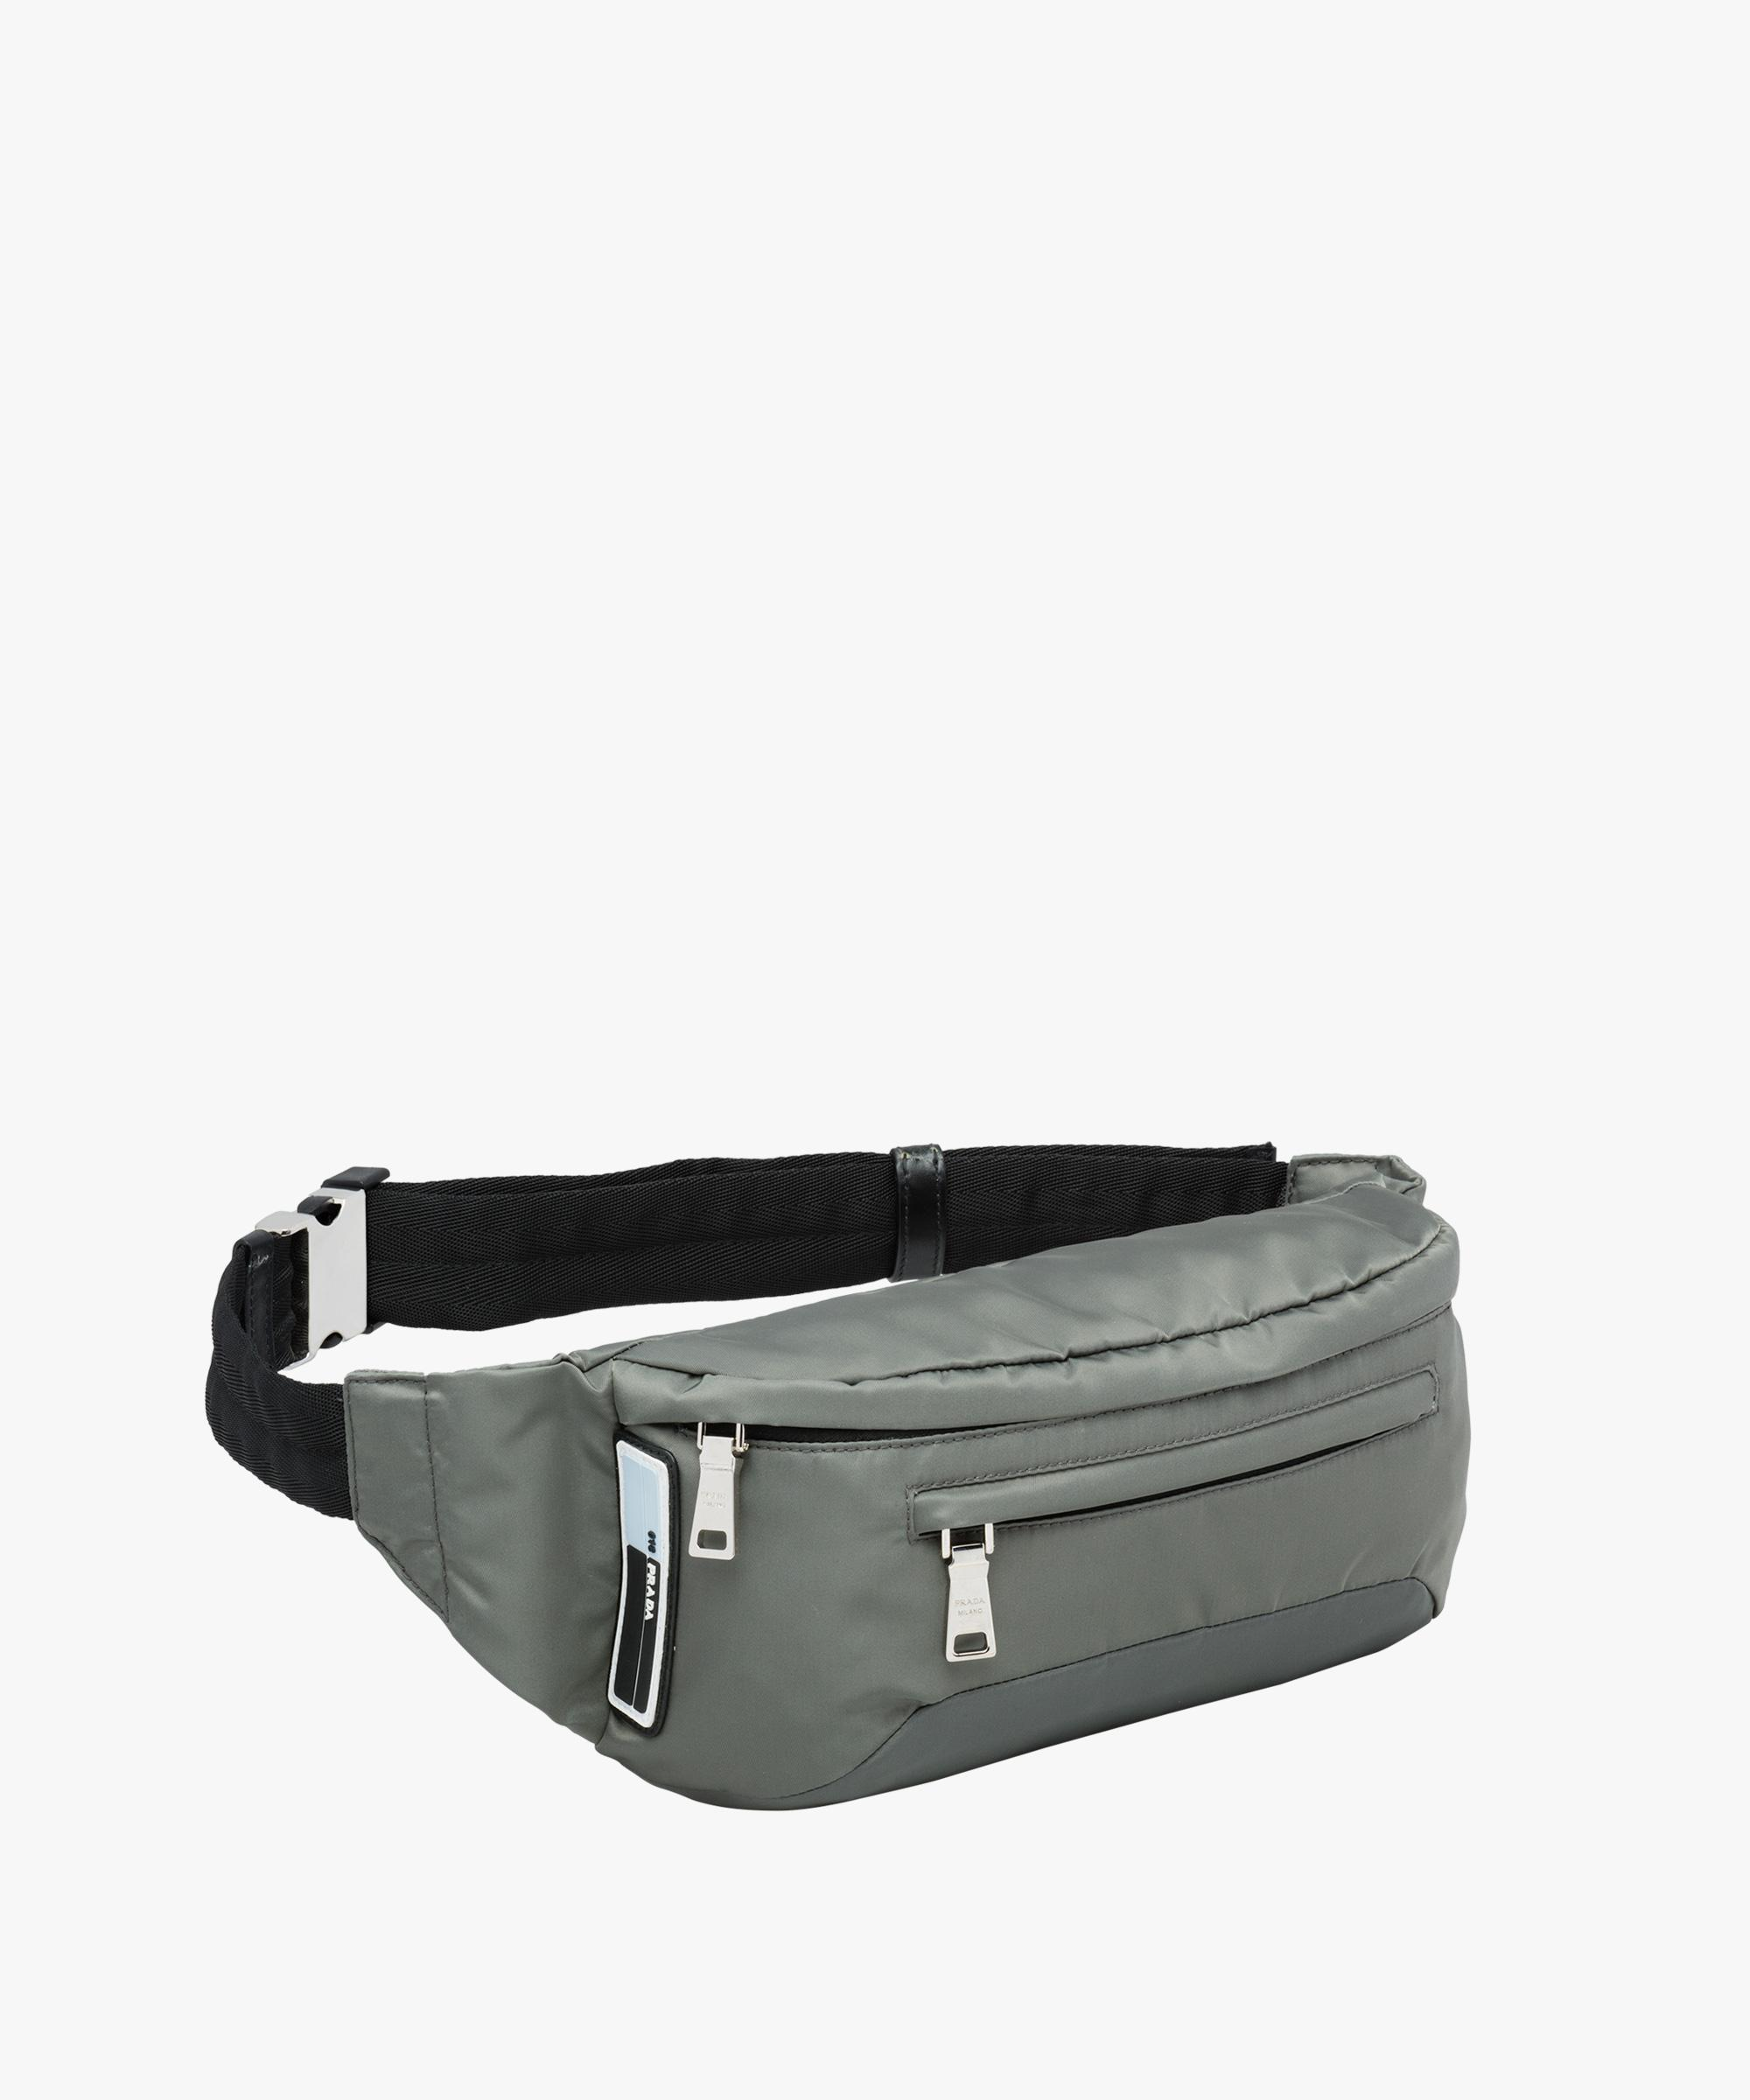 c42a1ee6e5c2 Lyst - Prada Technical Fabric Belt Bag in Gray for Men